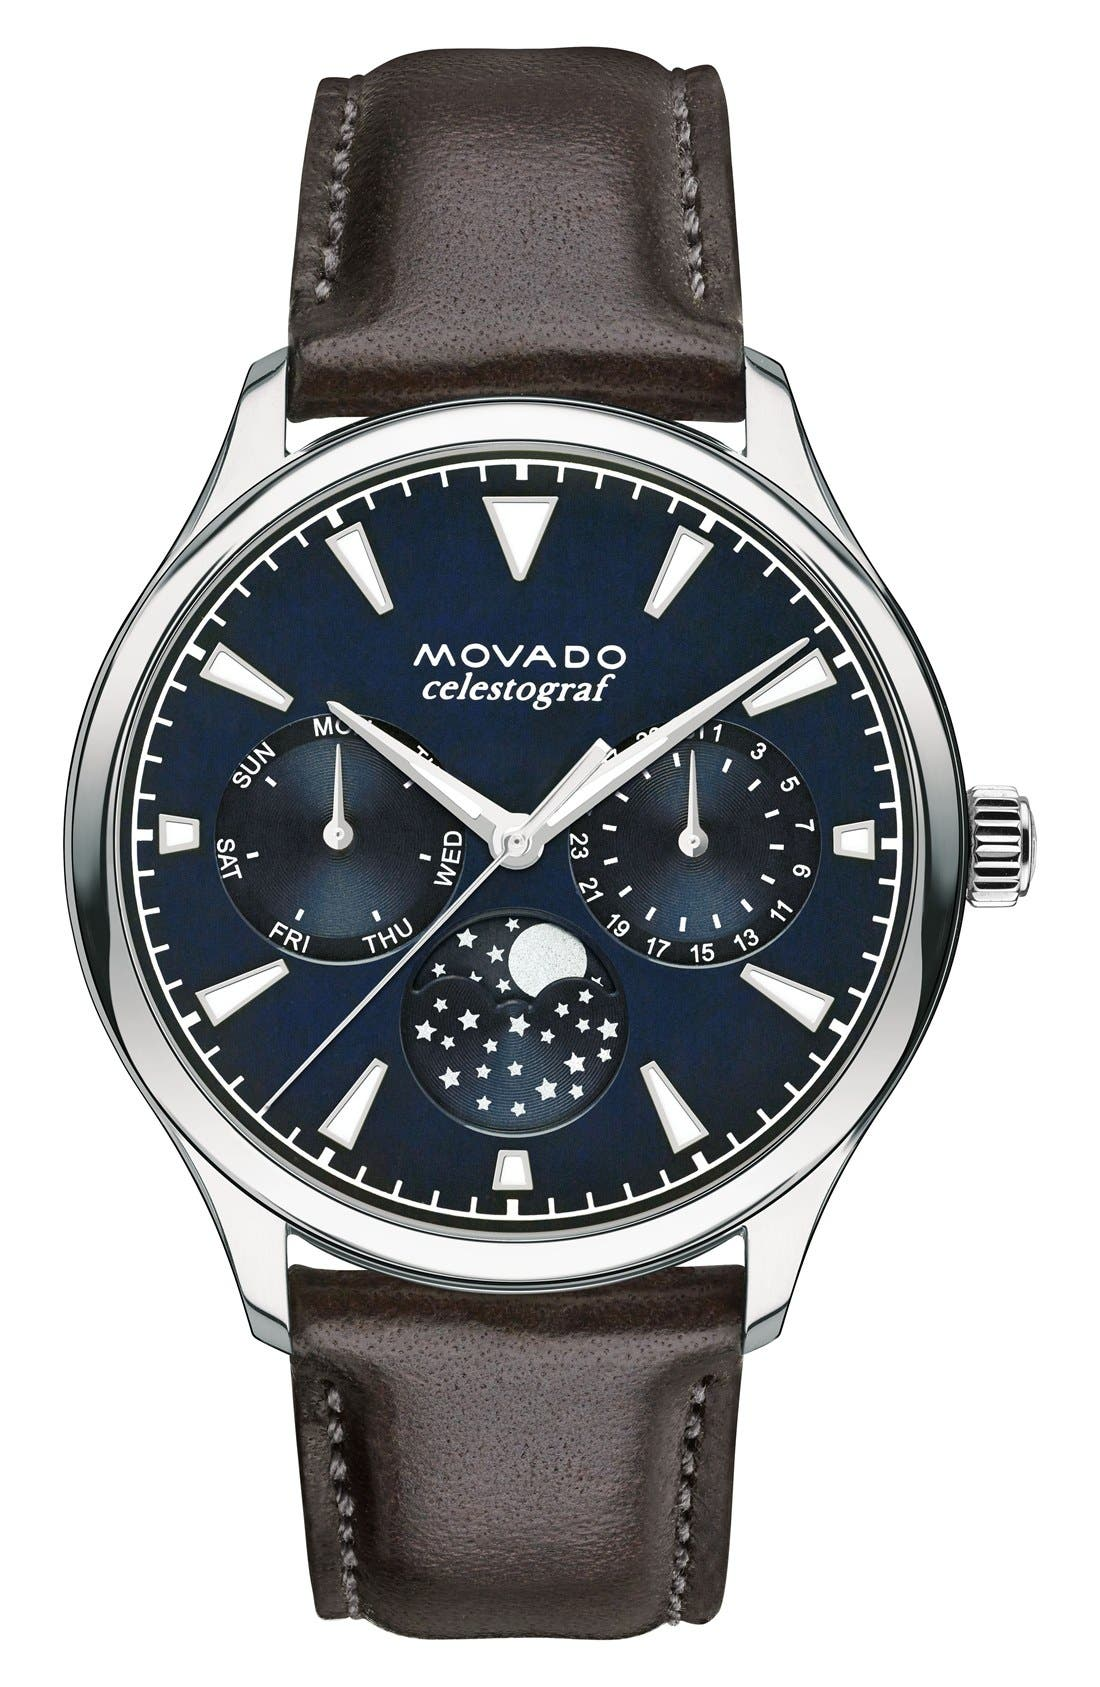 MOVADO, 'Heritage' Multifunction Leather Strap Watch, 36mm, Main thumbnail 1, color, BROWN/ BLUE/ SILVER